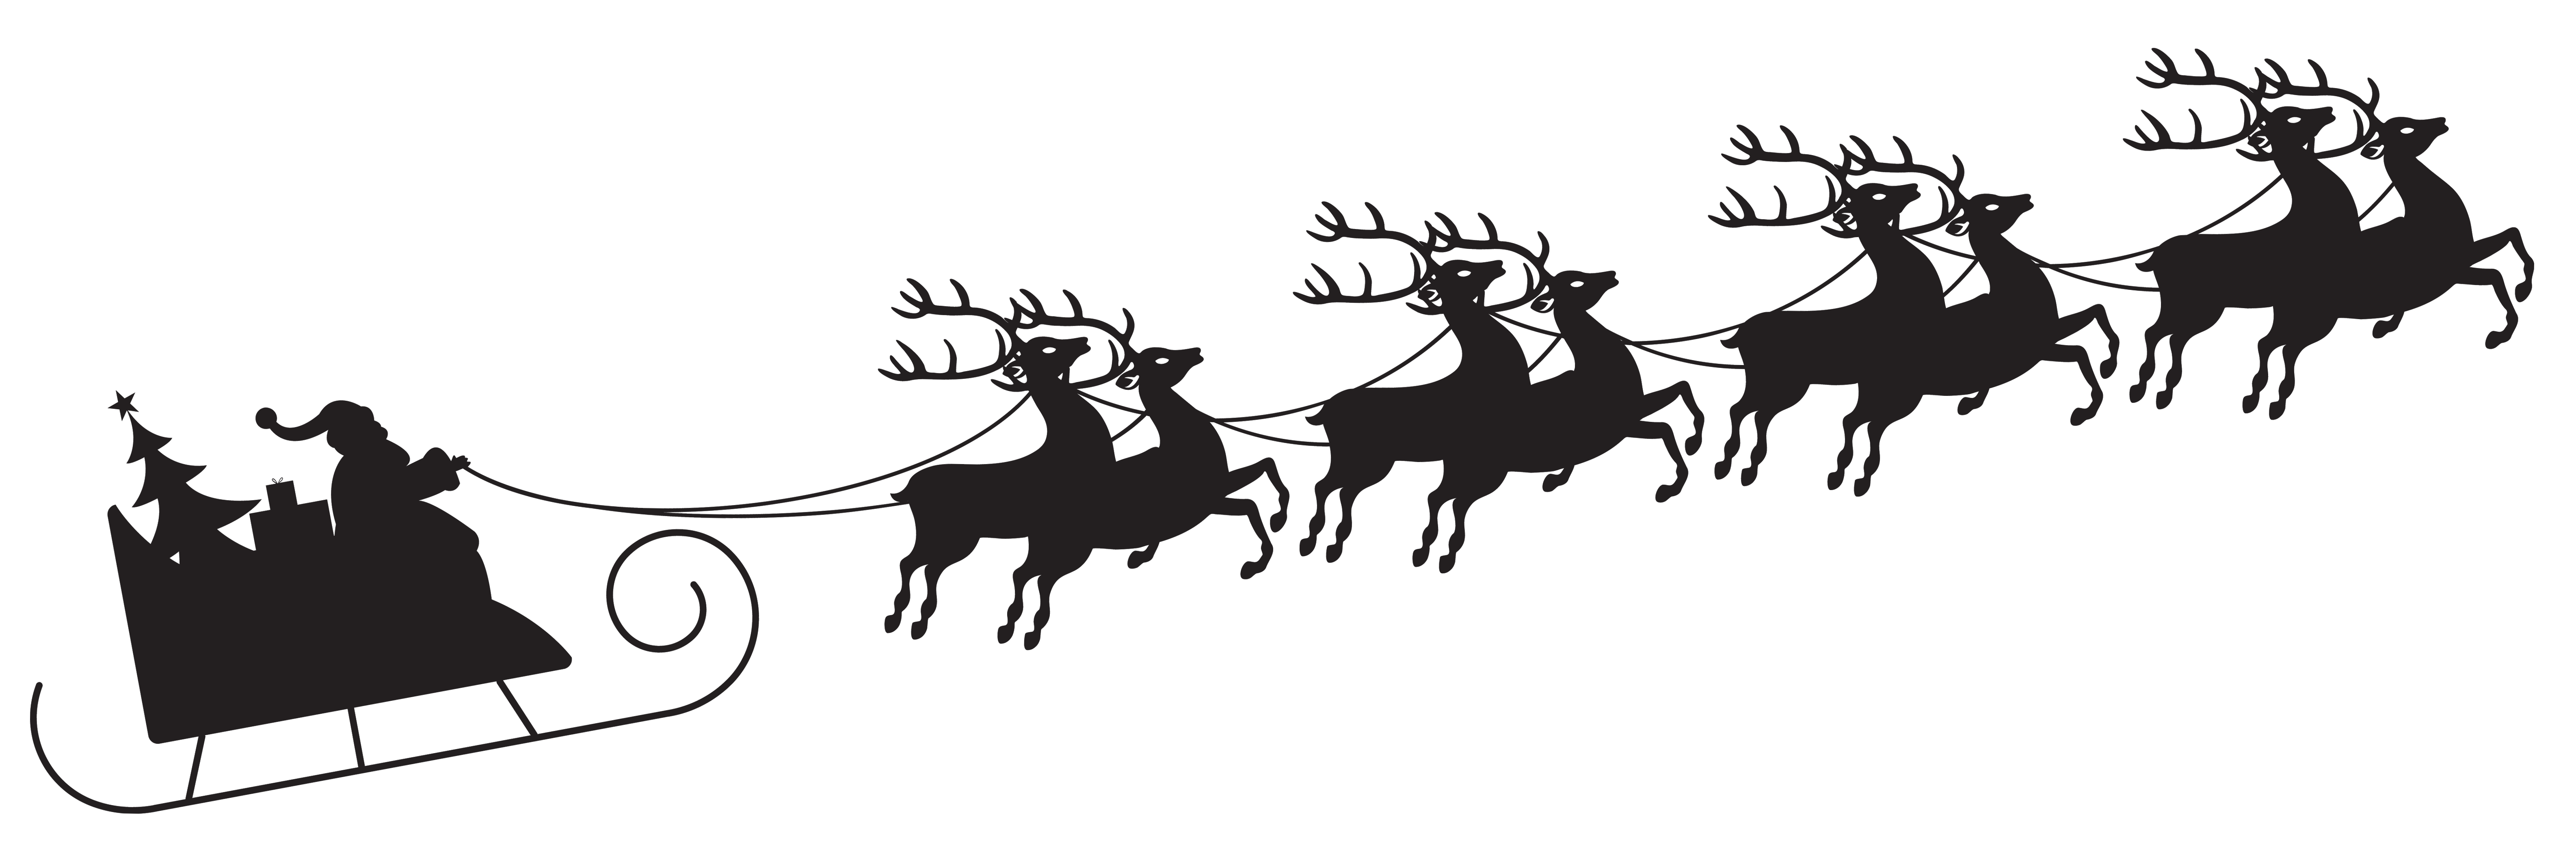 png transparent stock With silhouette png clip. Transparent santa sleigh